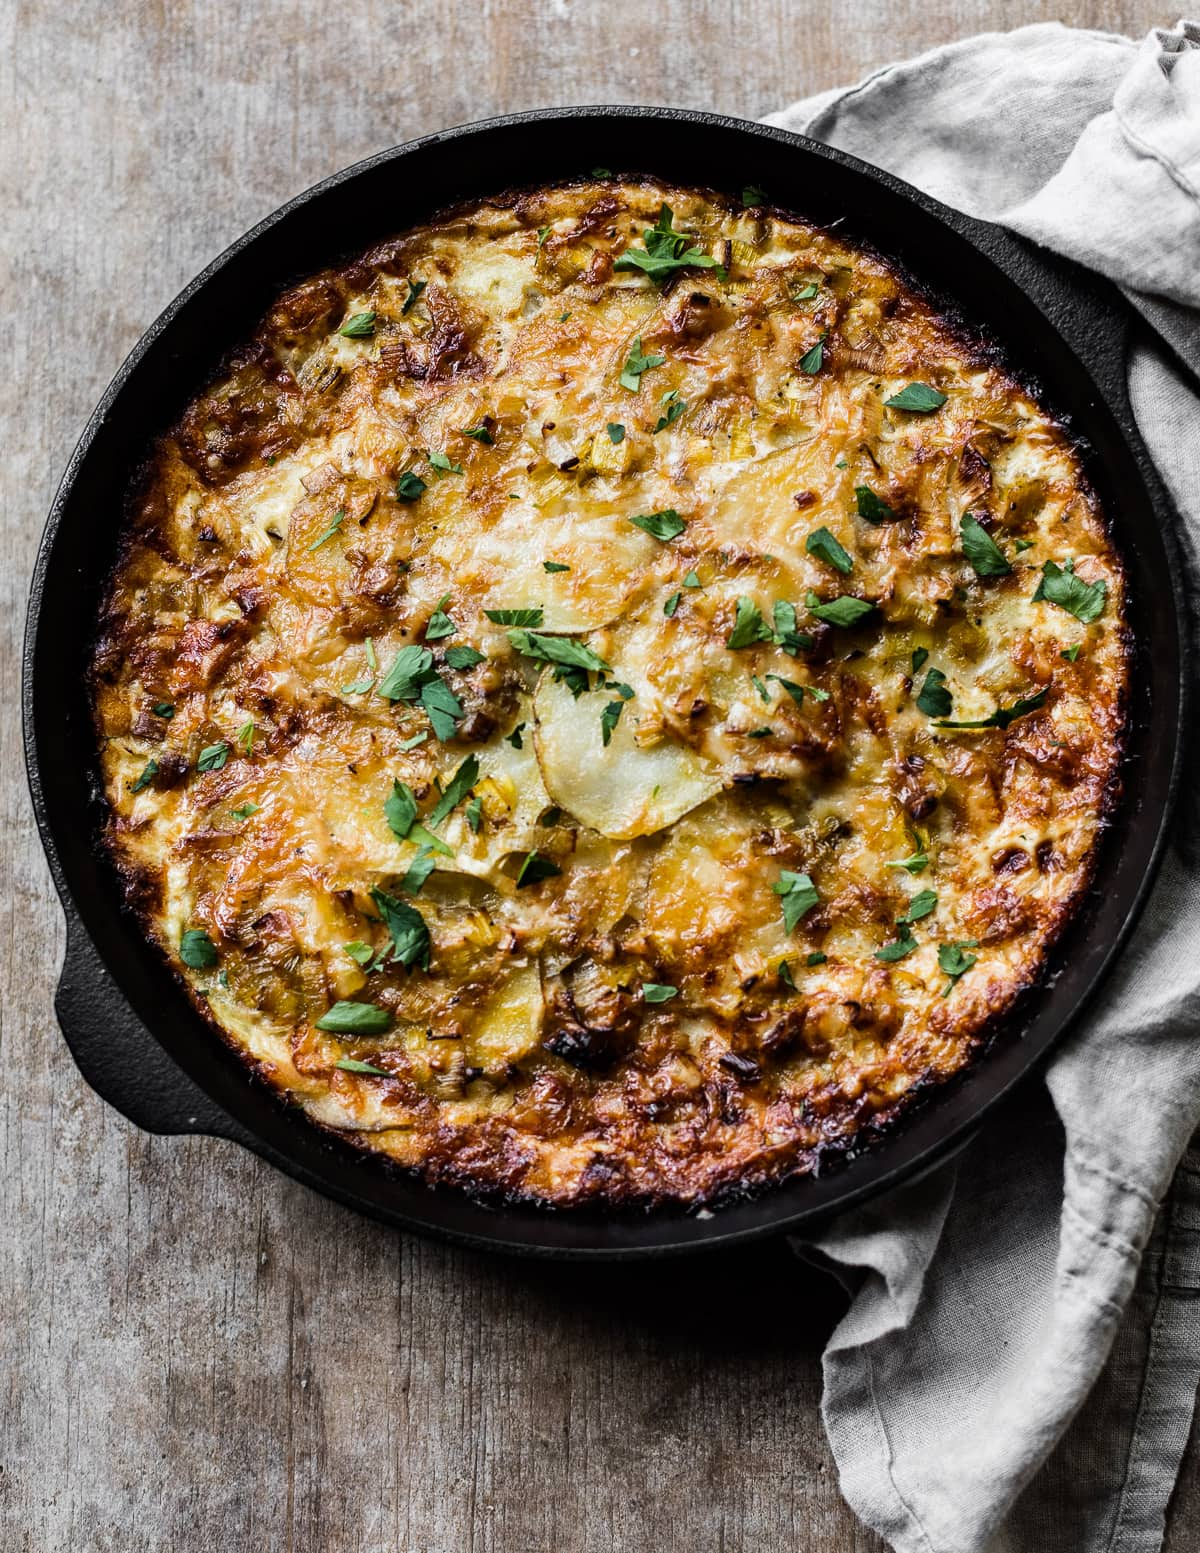 French Potato Cake with Leeks and Gruyere Cheese